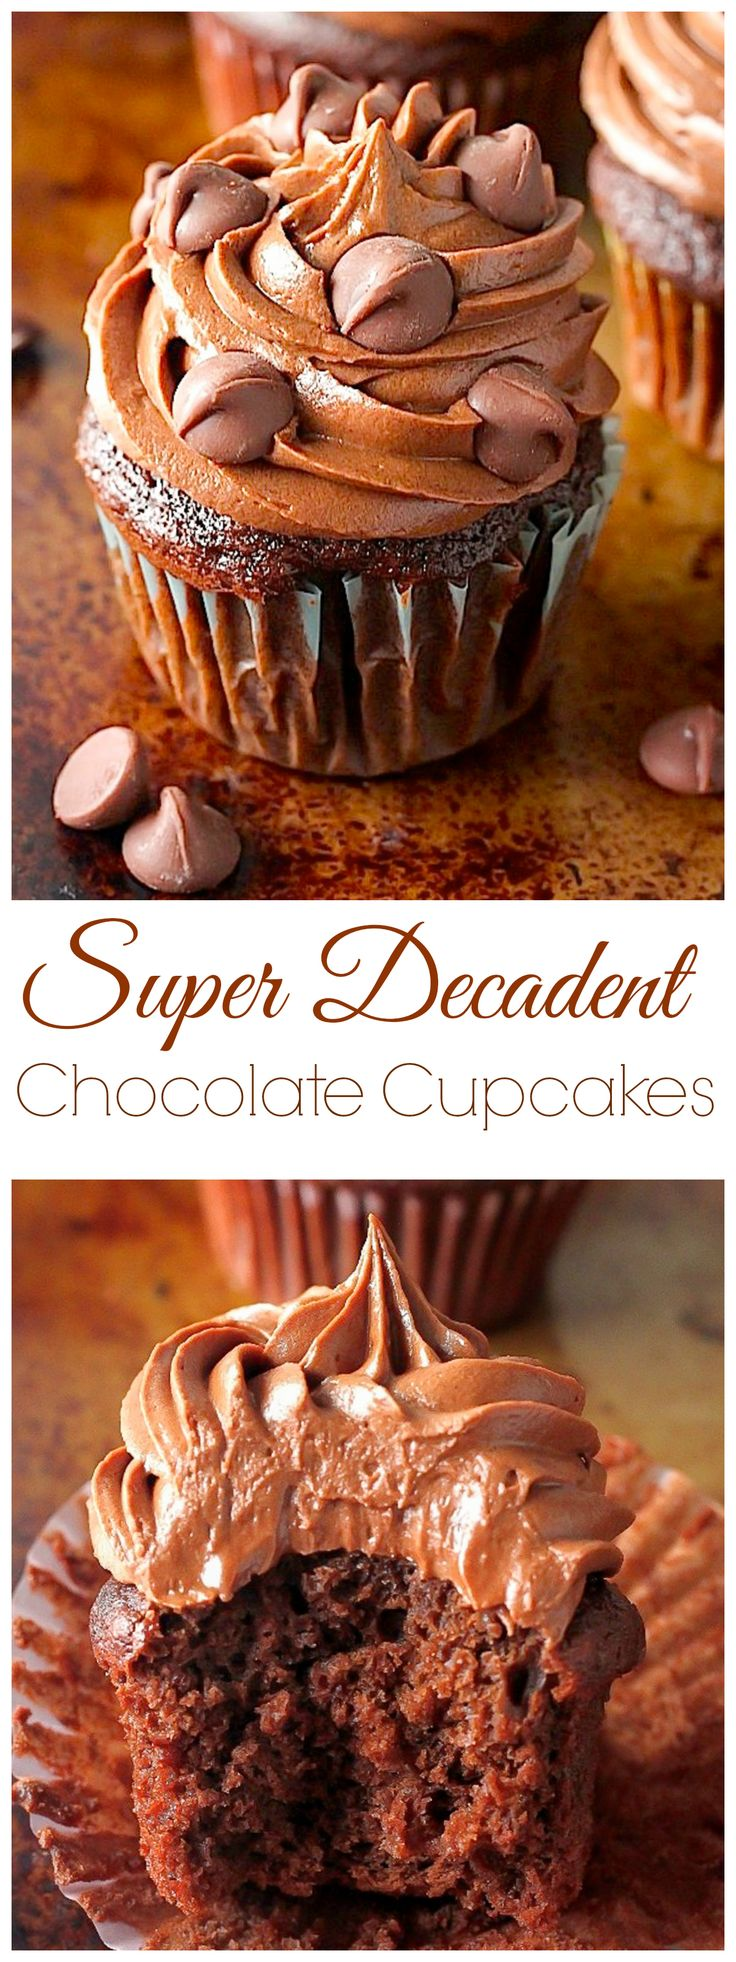 Super Decadent Chocolate Cupcakes - These Homemade Chocolate Cupcakes have RAVE reviews in the comments and are so easy to make! We LOVE these.